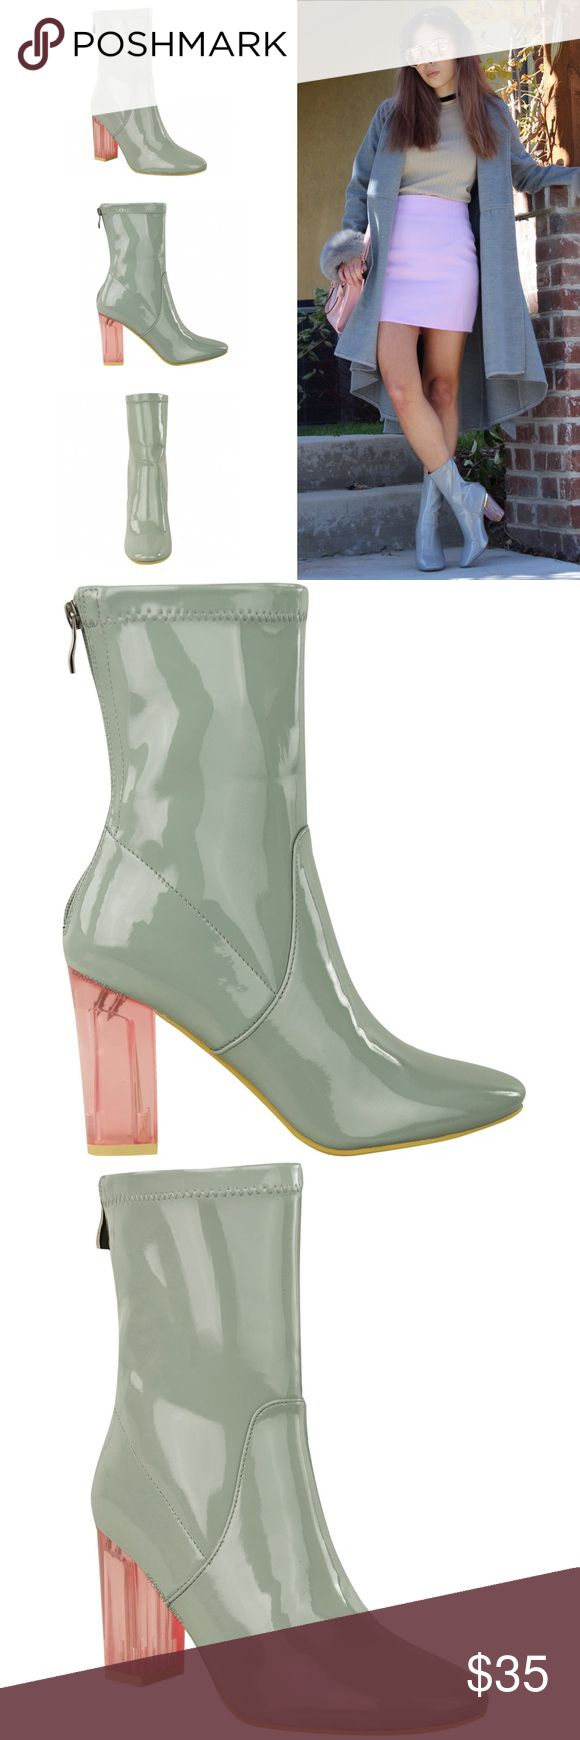 Grey Perspex pink transparent heel ankle booties These boots are inspired by the Dior perspex ankle boots seen on the fabulous Kylie Jenner! Heel height: 3.5 inches | Platform height: 0.1 inches. The toe is slightly rounded. The last picture is showing the bottom of the boots, as you can see...besides being tried on, these are in pristine condition. The 1st picture I styled a similar pair of boots, but those are mine and are not for sale 💩💩💩 Shoes Ankle Boots & Booties